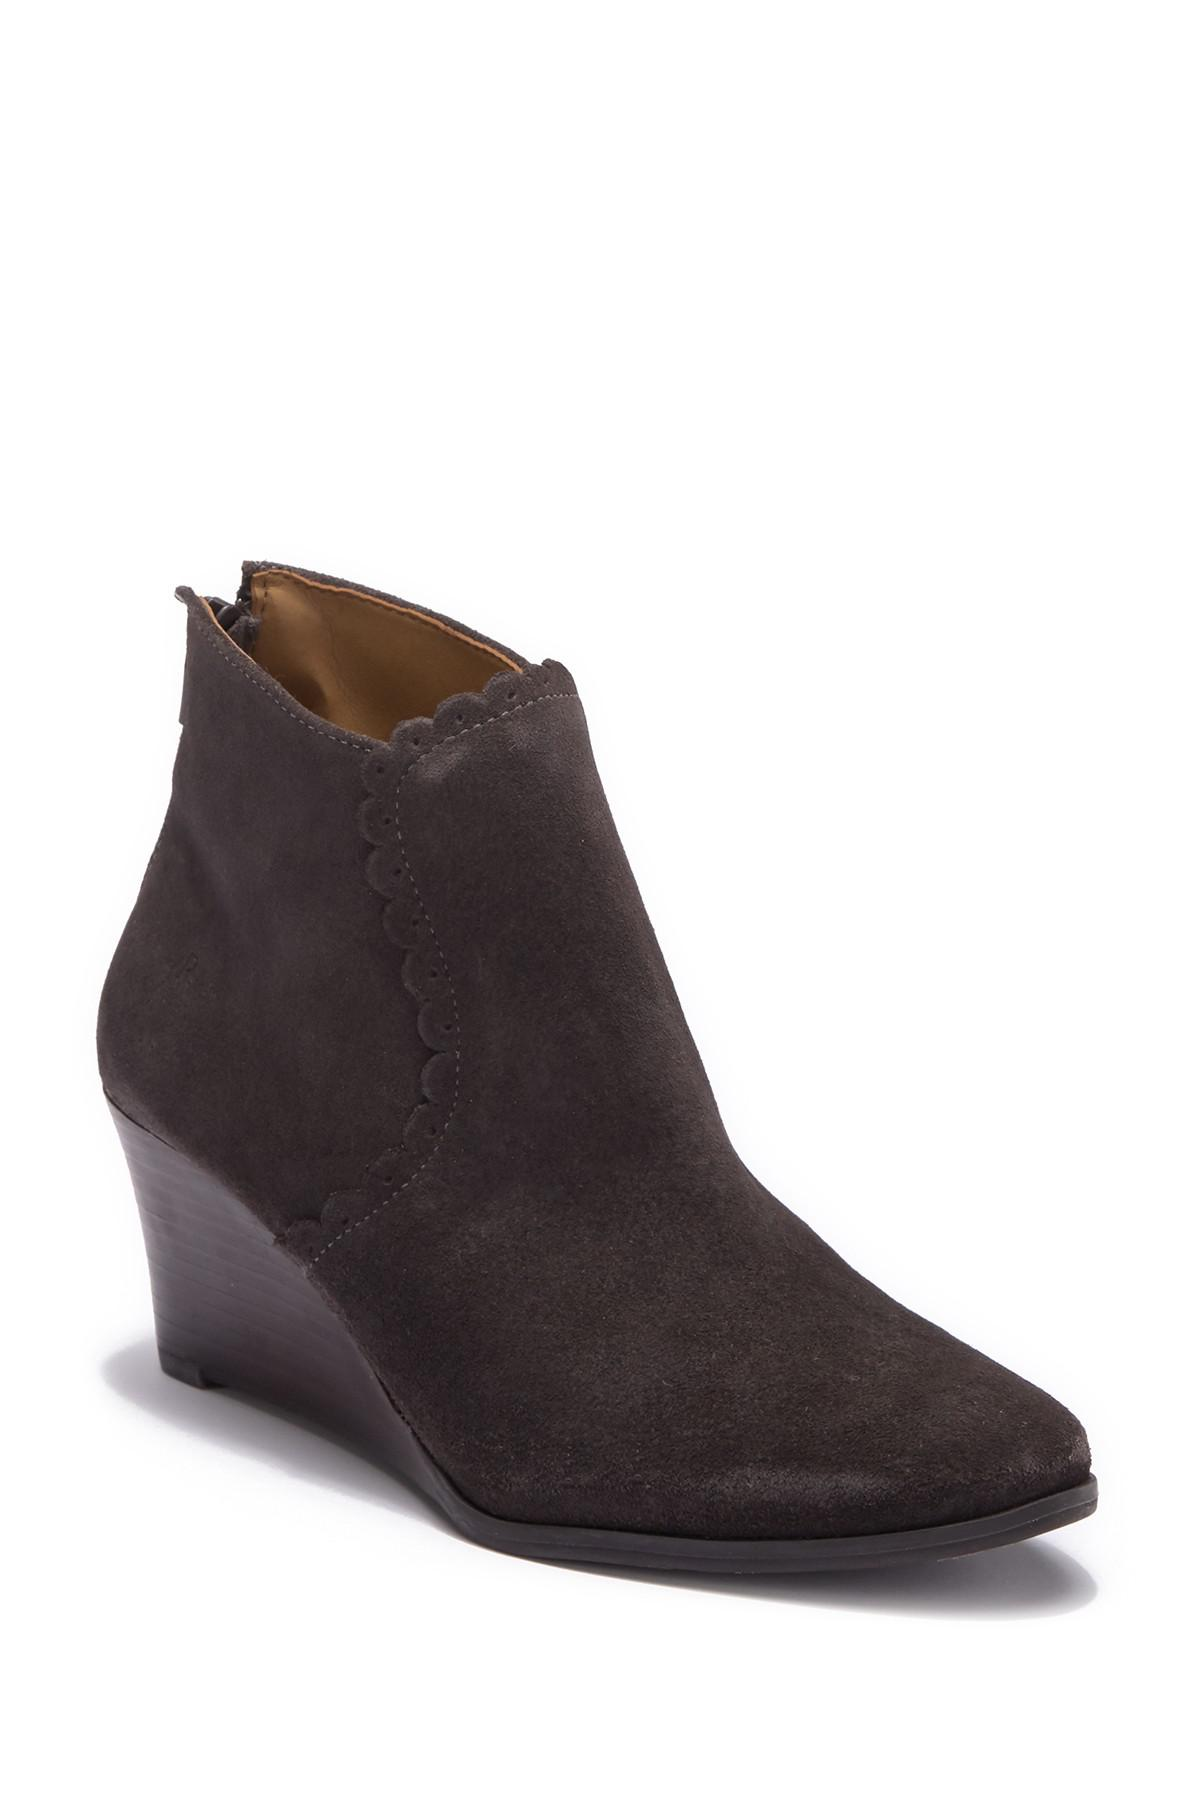 5303c8fcd56a Lyst - Jack Rogers Emery Suede Ankle Boot in Gray